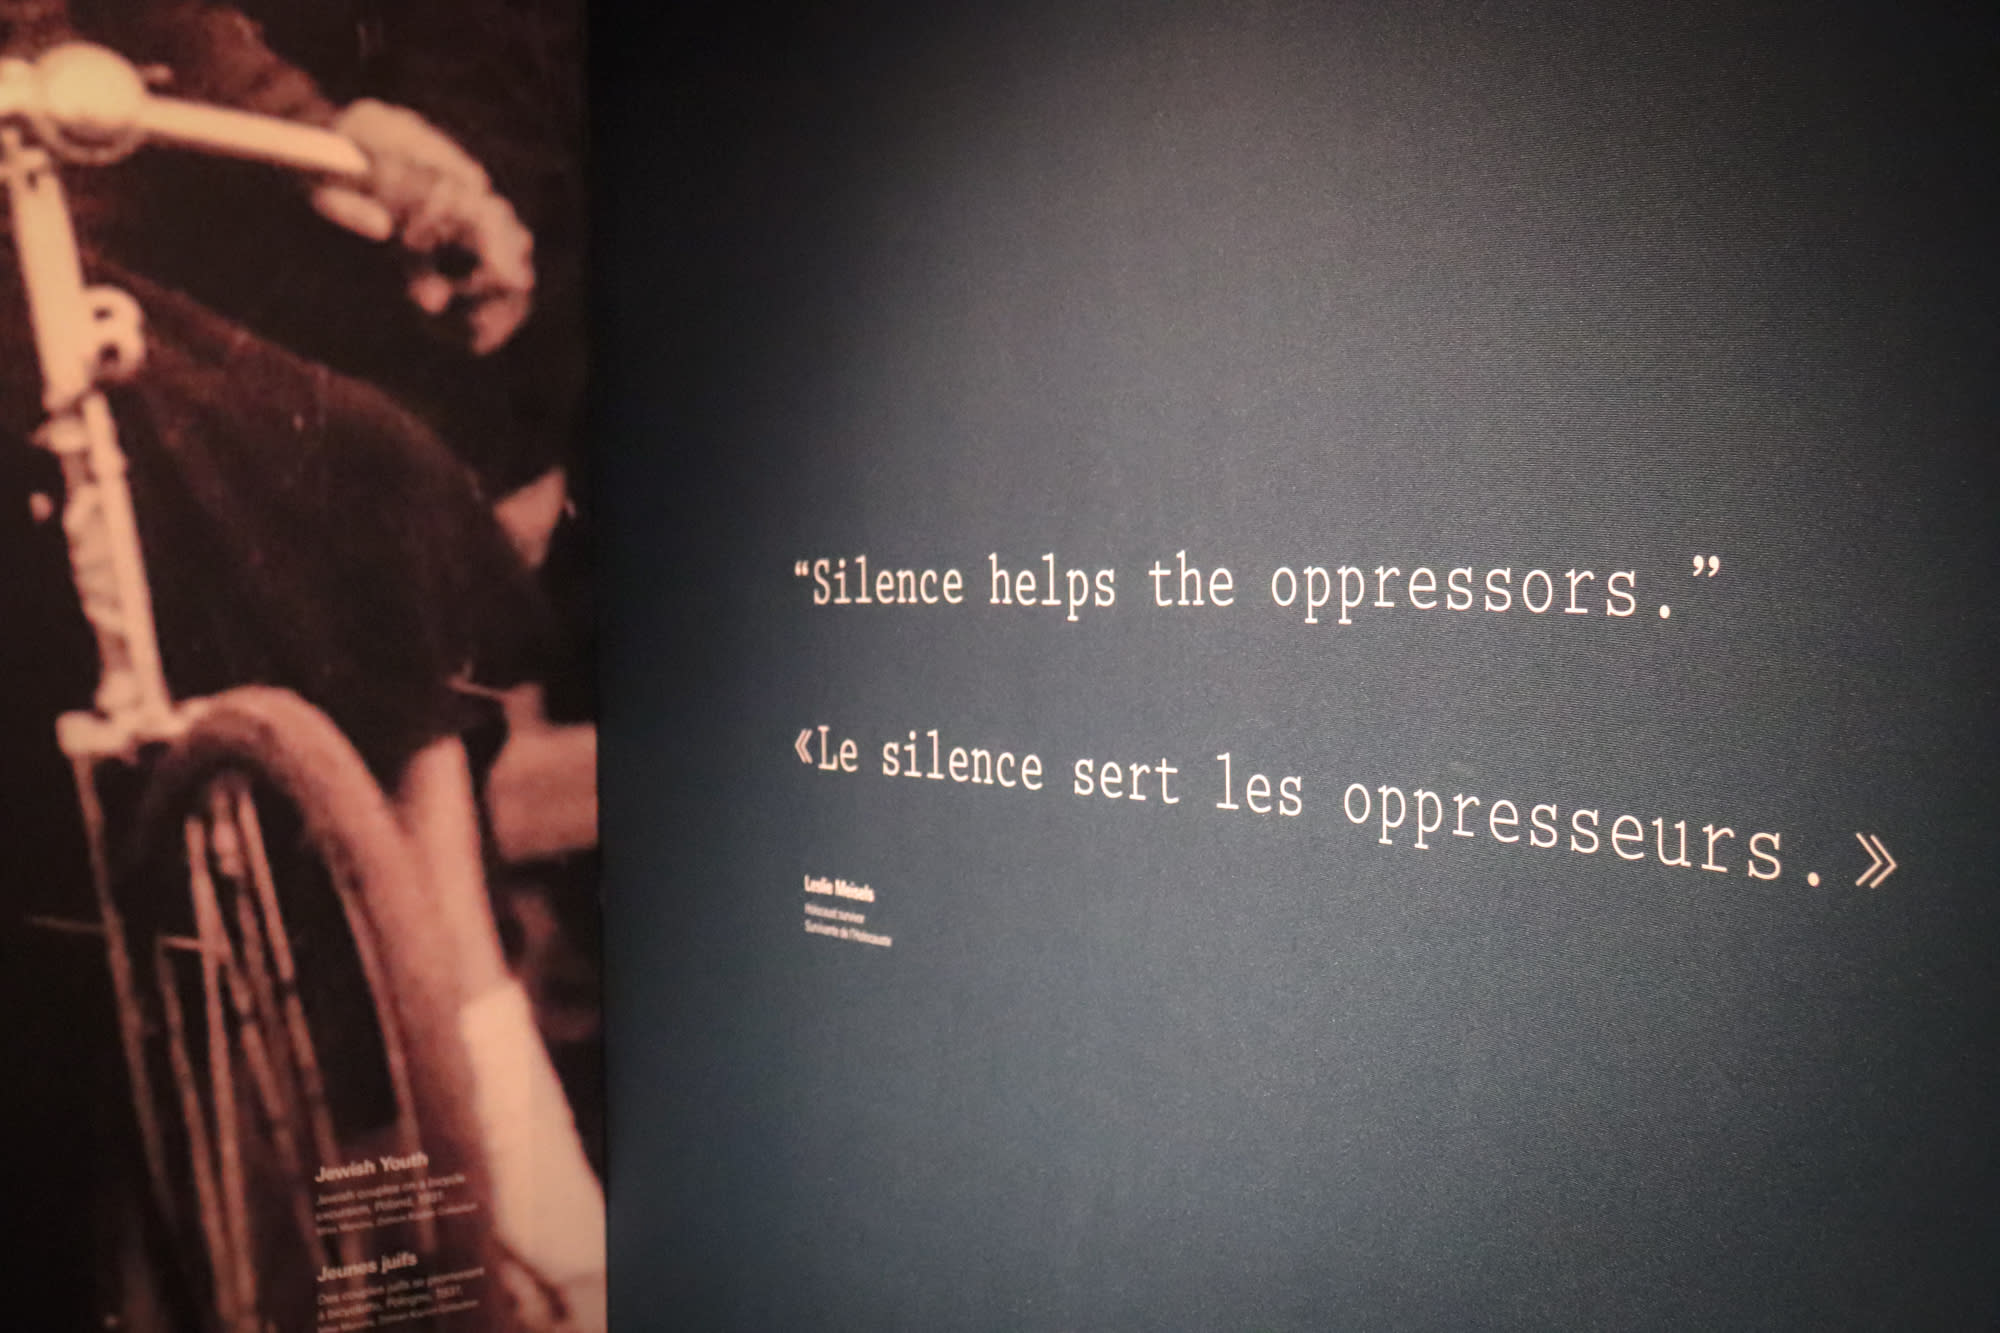 Sign with text 'silence helps the oppressors' in English and French